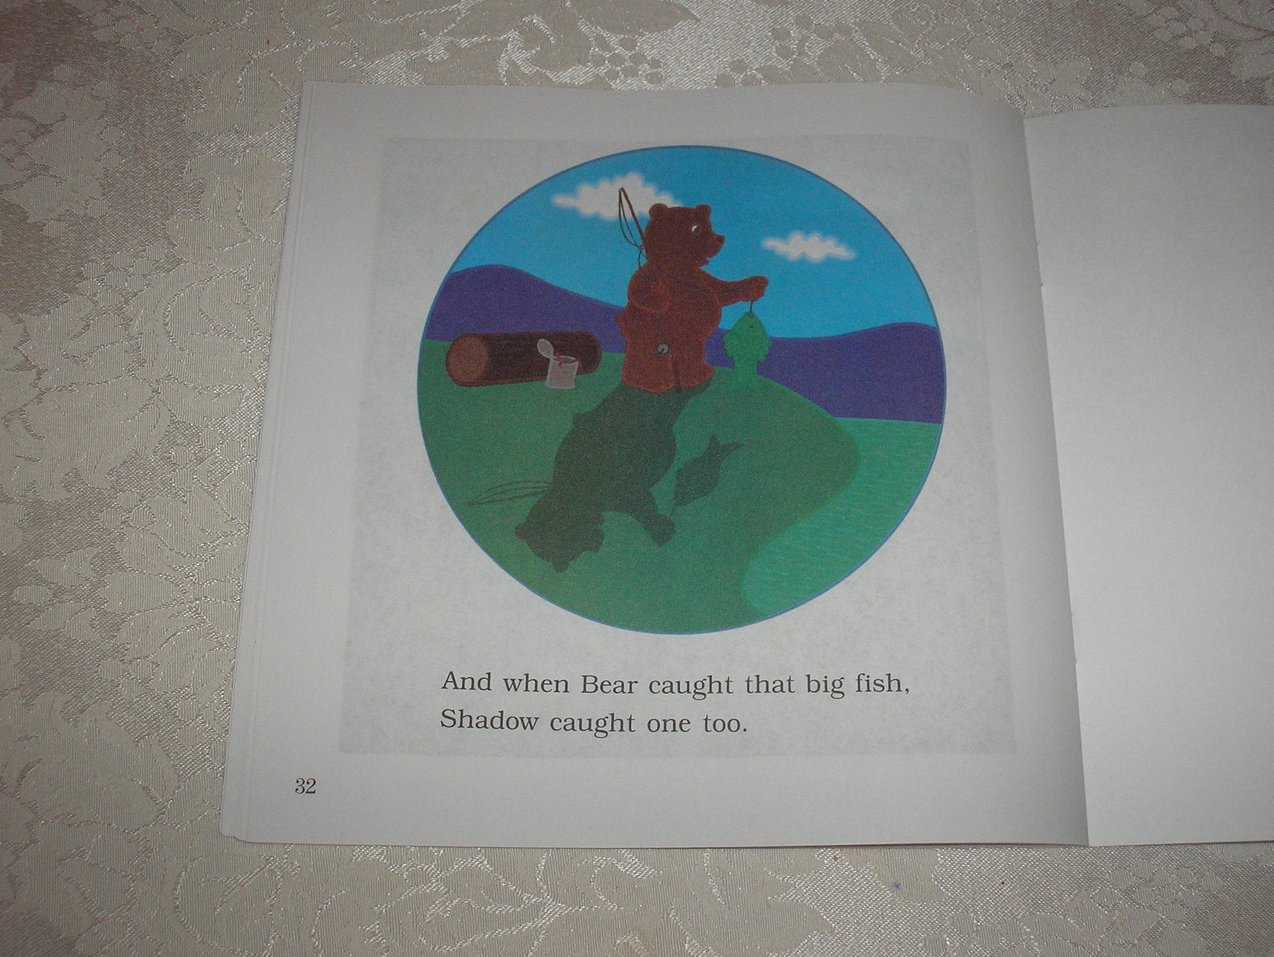 Image 5 of Bear Shadow Frank Asch Brand New Softcover